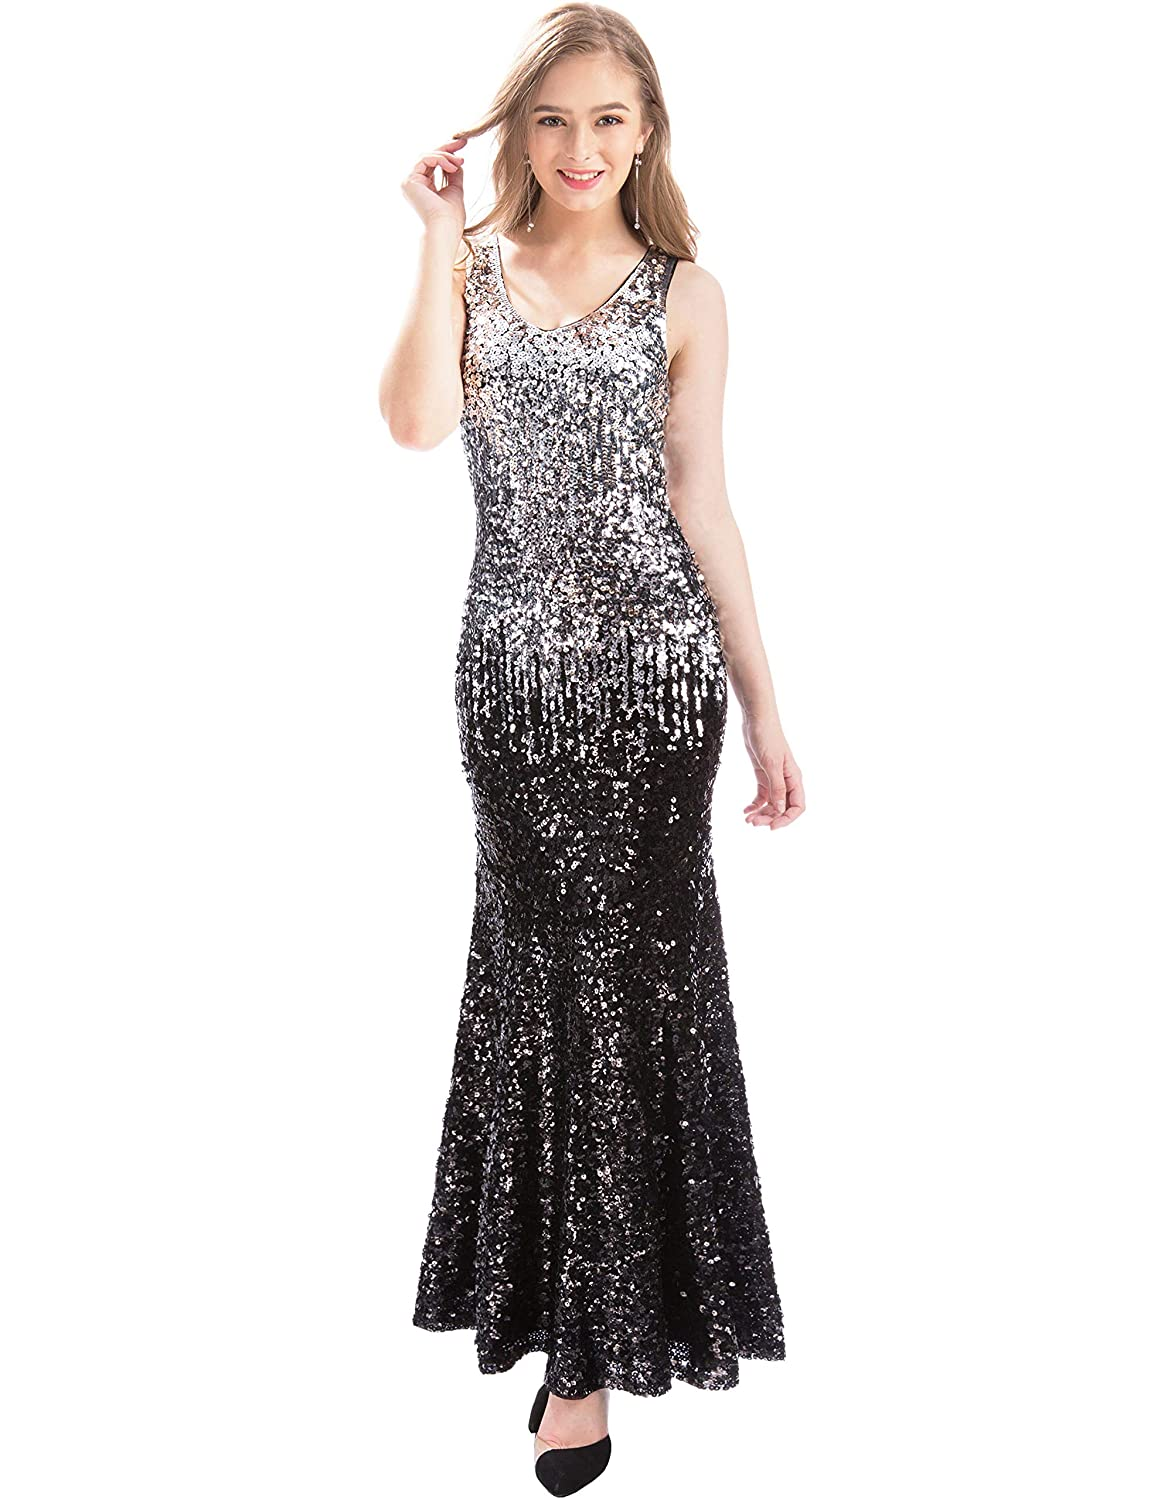 d5bca3b9e088 From fun and flirty cocktail dresses to stunning floor length evening gowns,  Wear these beautiful sequin dresses to prom, cocktail parties, galas, ...